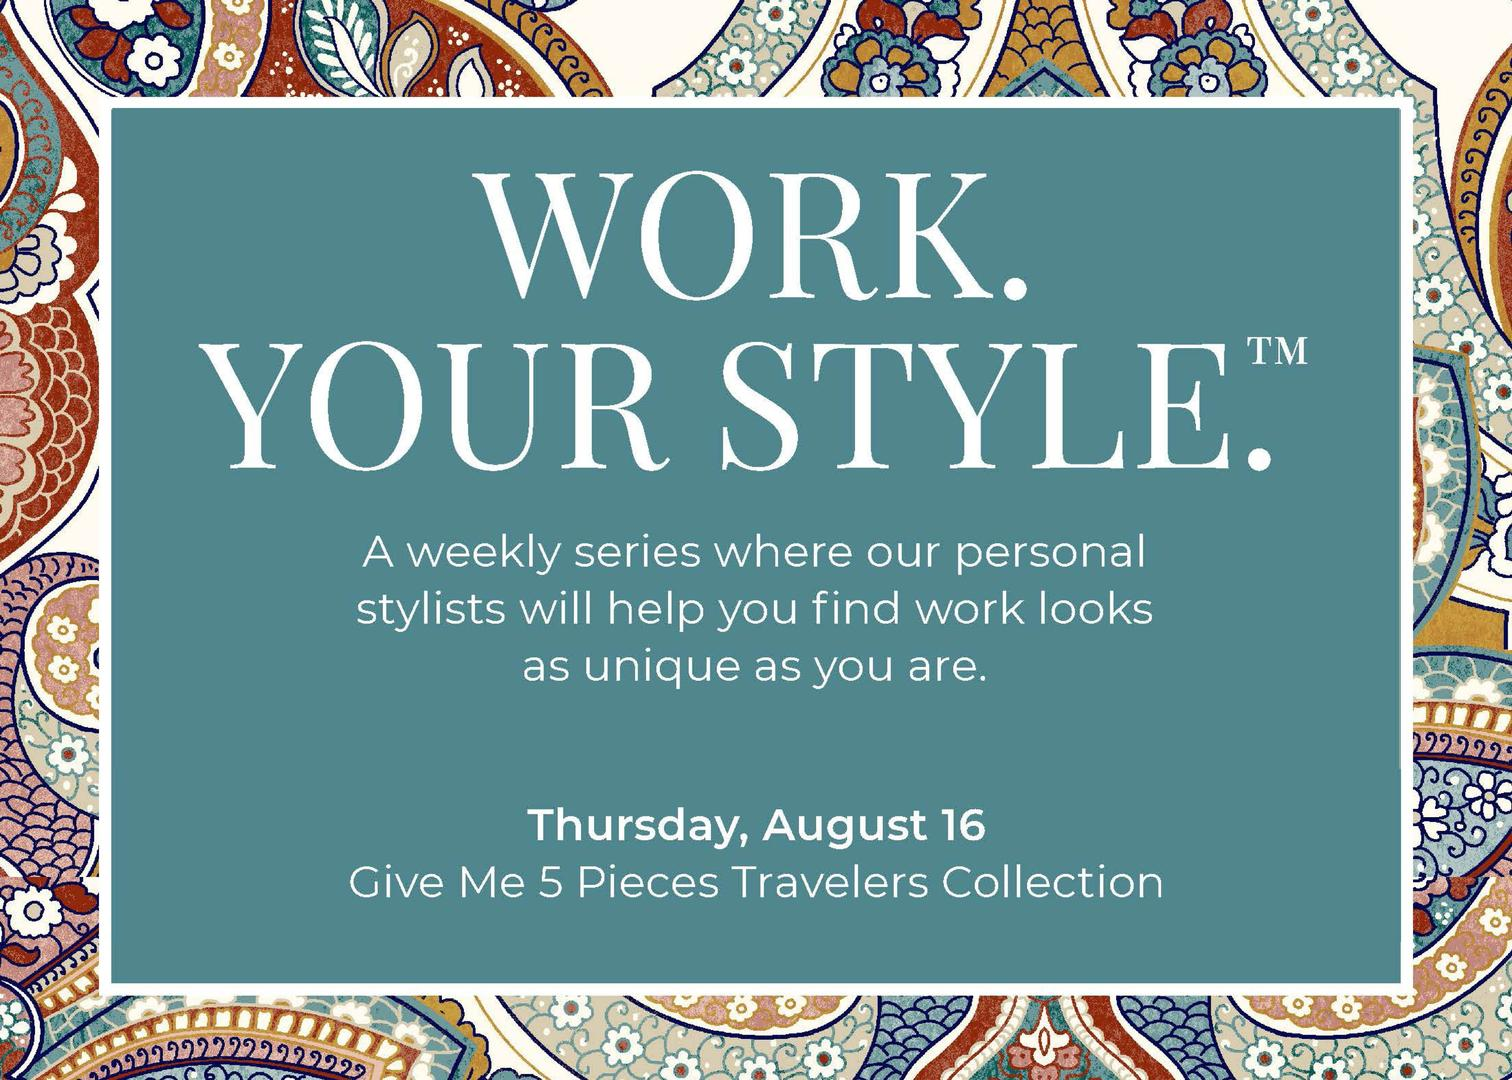 The Mall at Lexington Green, Work You Style- Give Me 5 Pieces Travelers Collection  Event Image: 161 Lexington Green Circle, Lexington, KY 40503, US